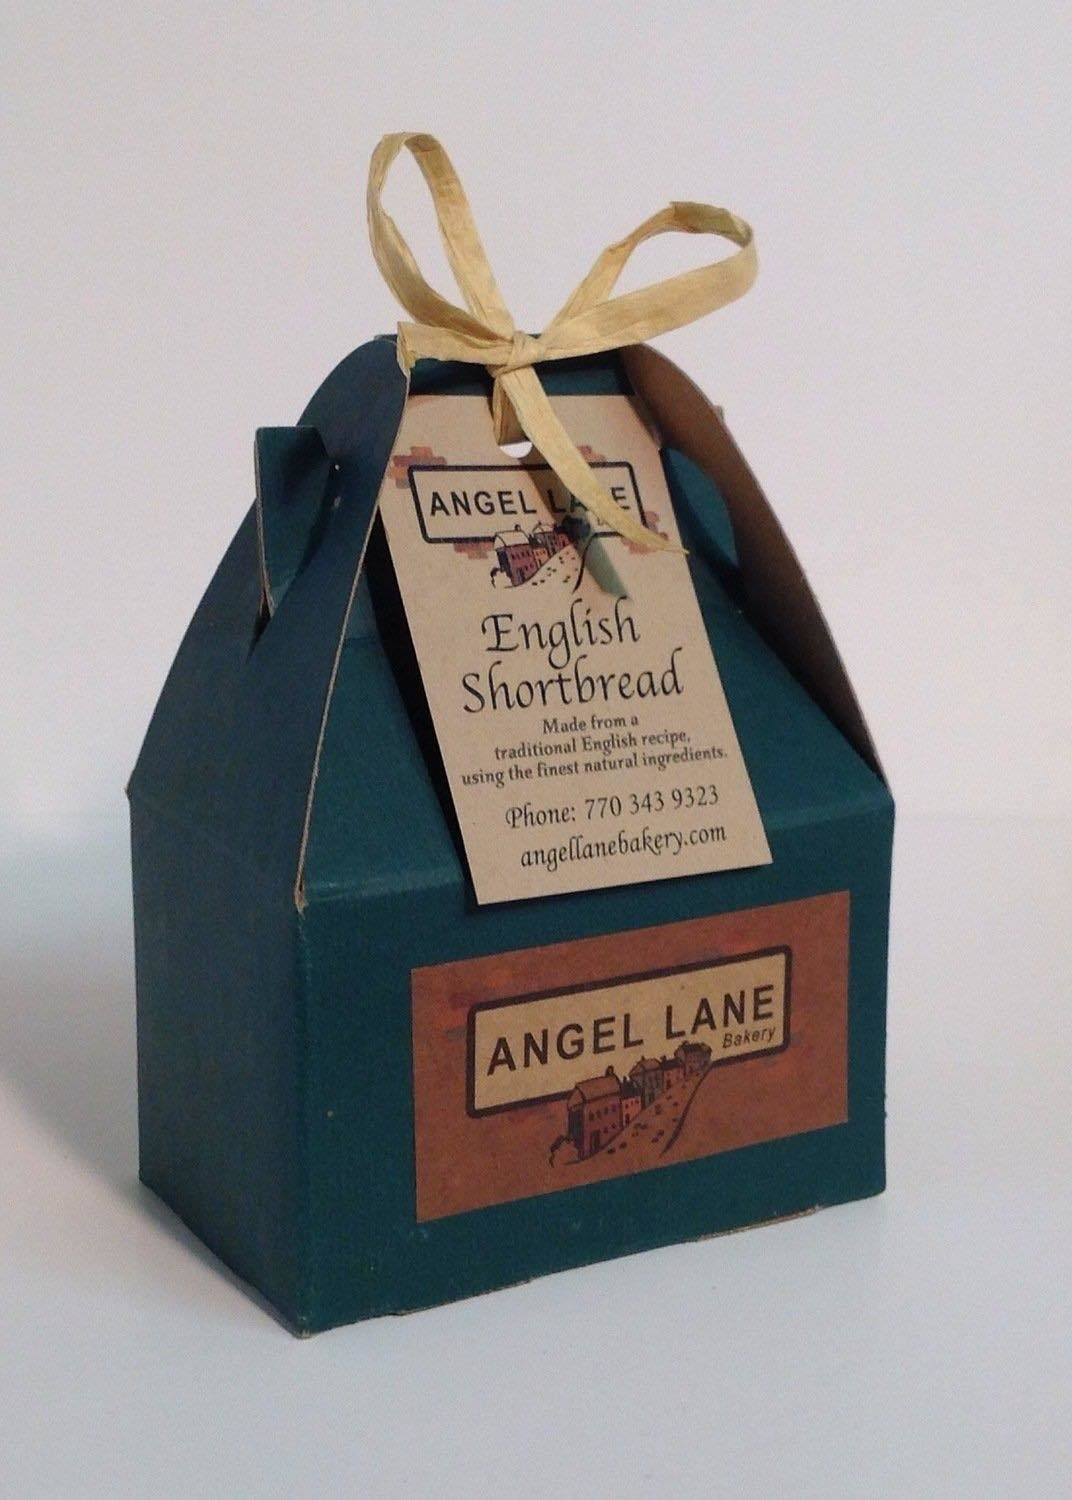 Angel Lane's Finest Shortbread - Four Boxes of 6 Slices/Box